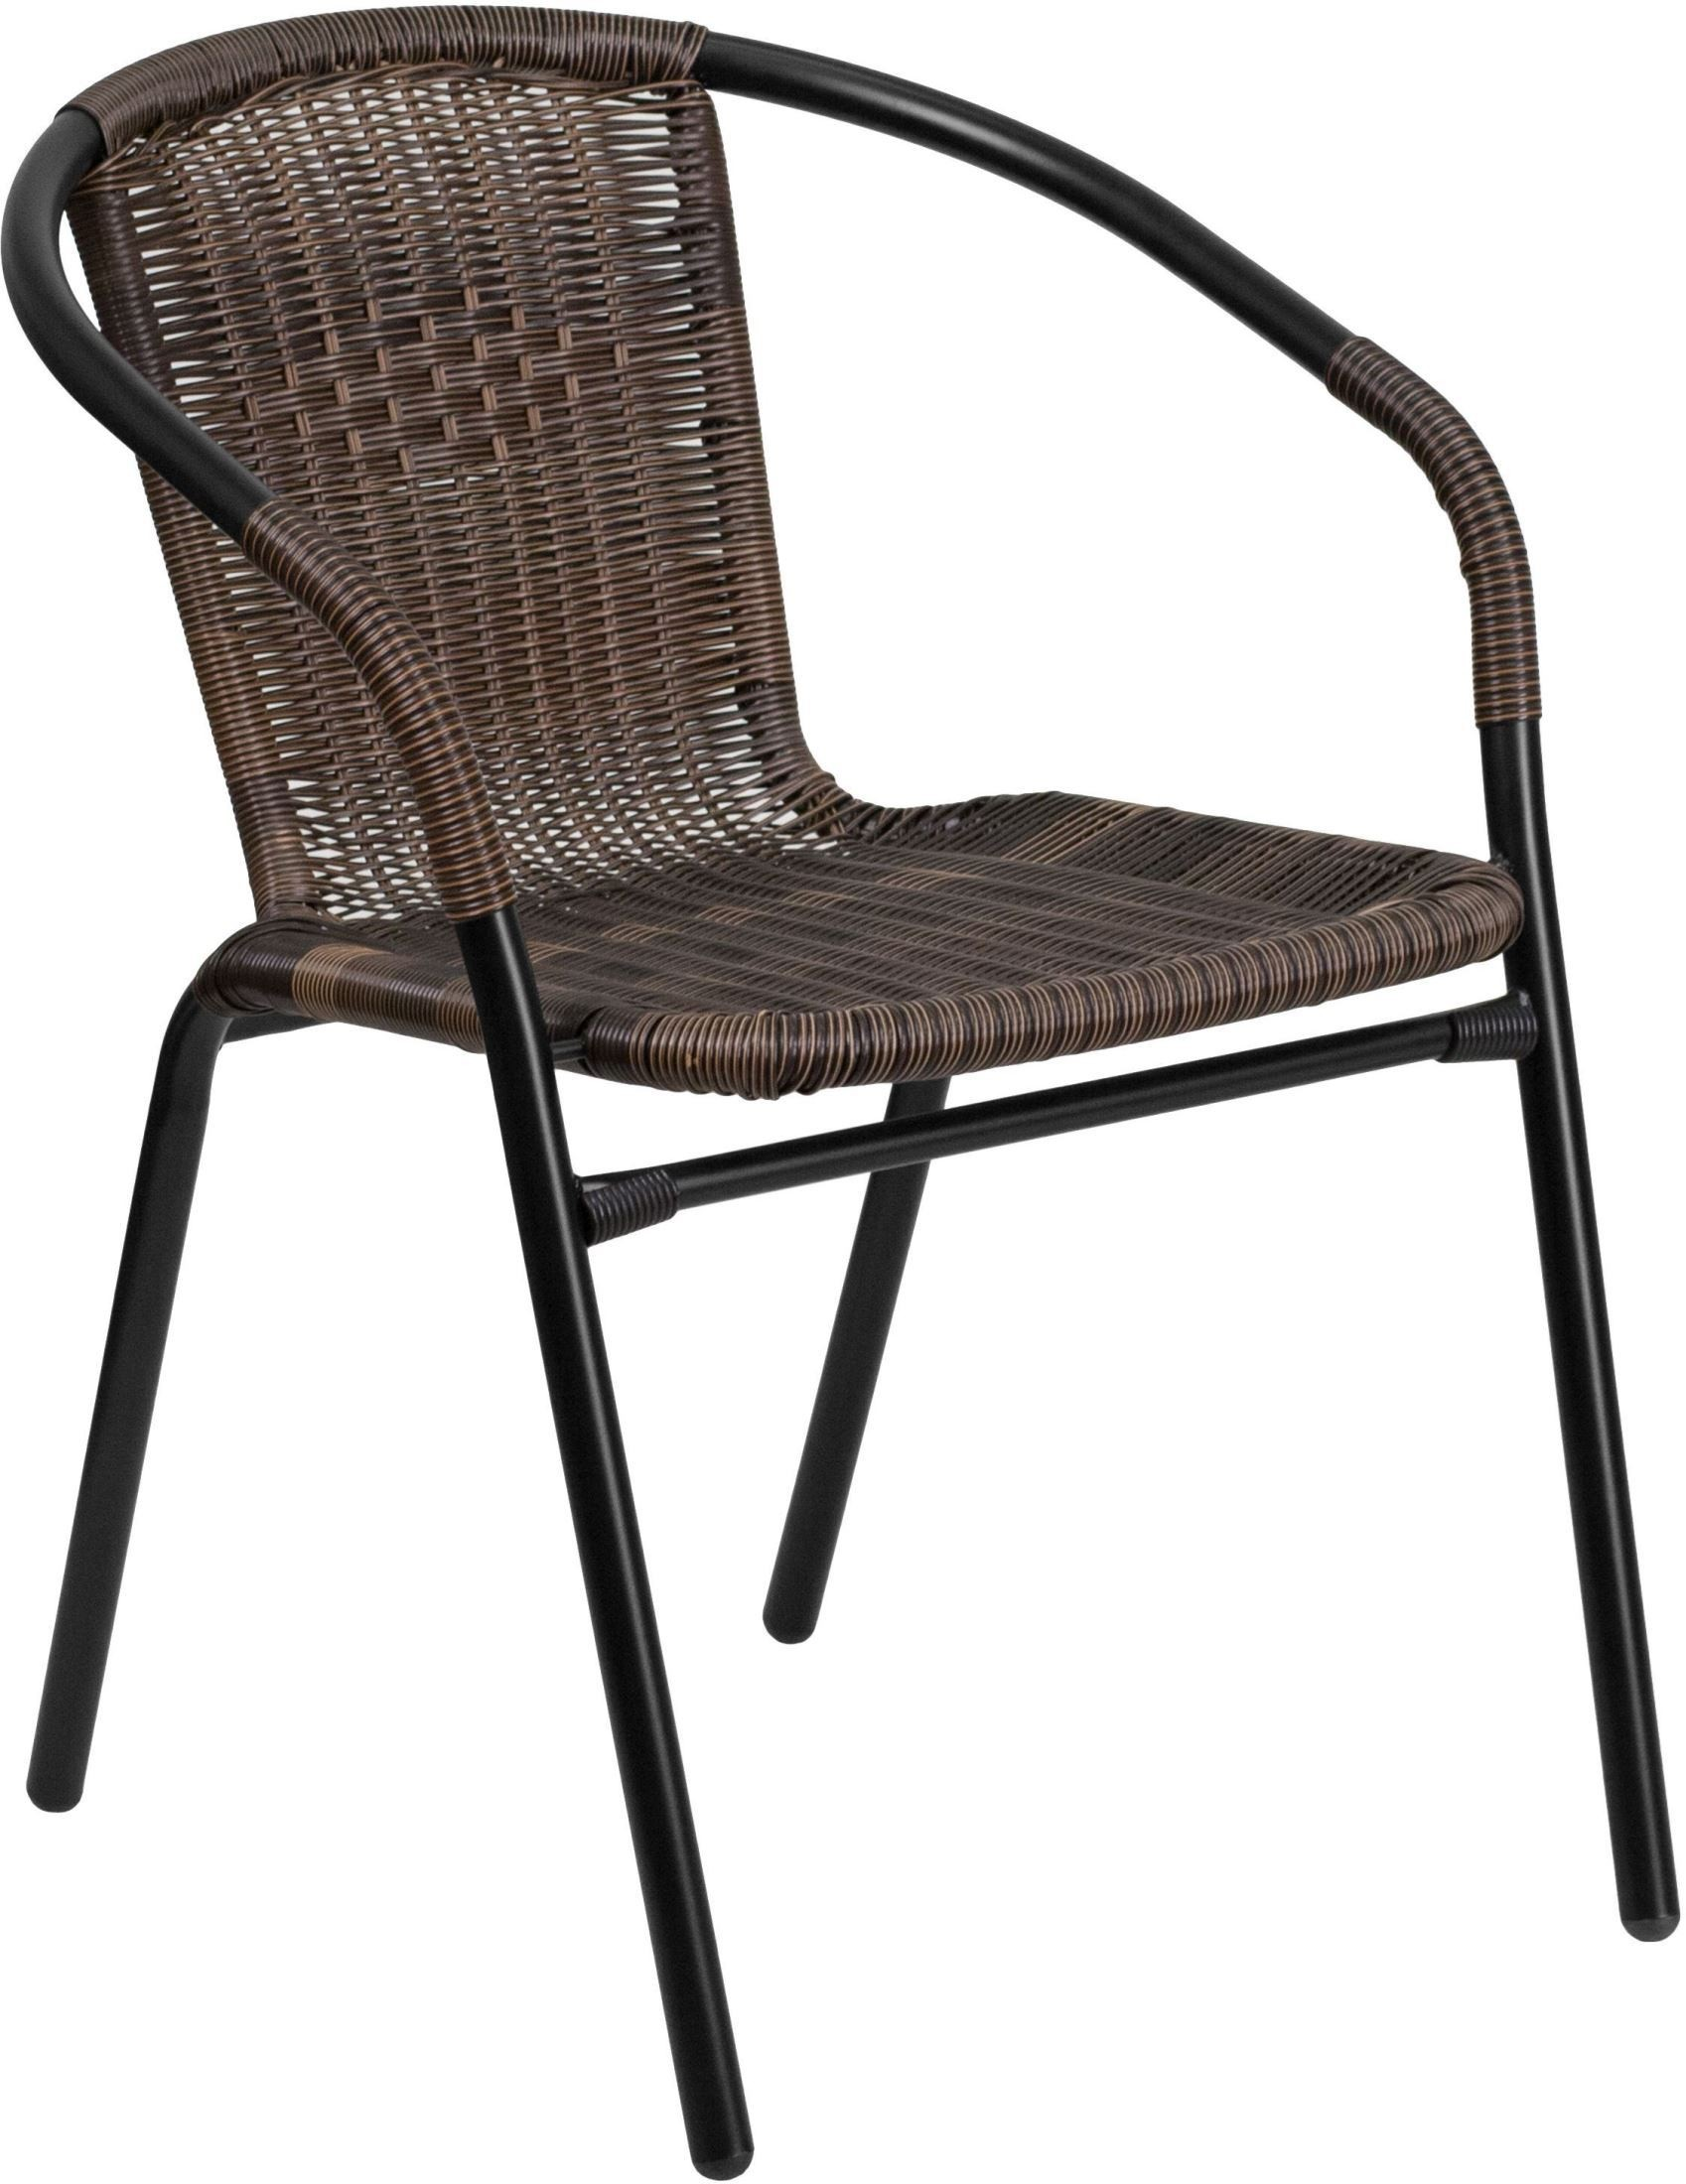 White Metal Chair Dark Brown Rattan Indoor Outdoor Restaurant Stack Chair